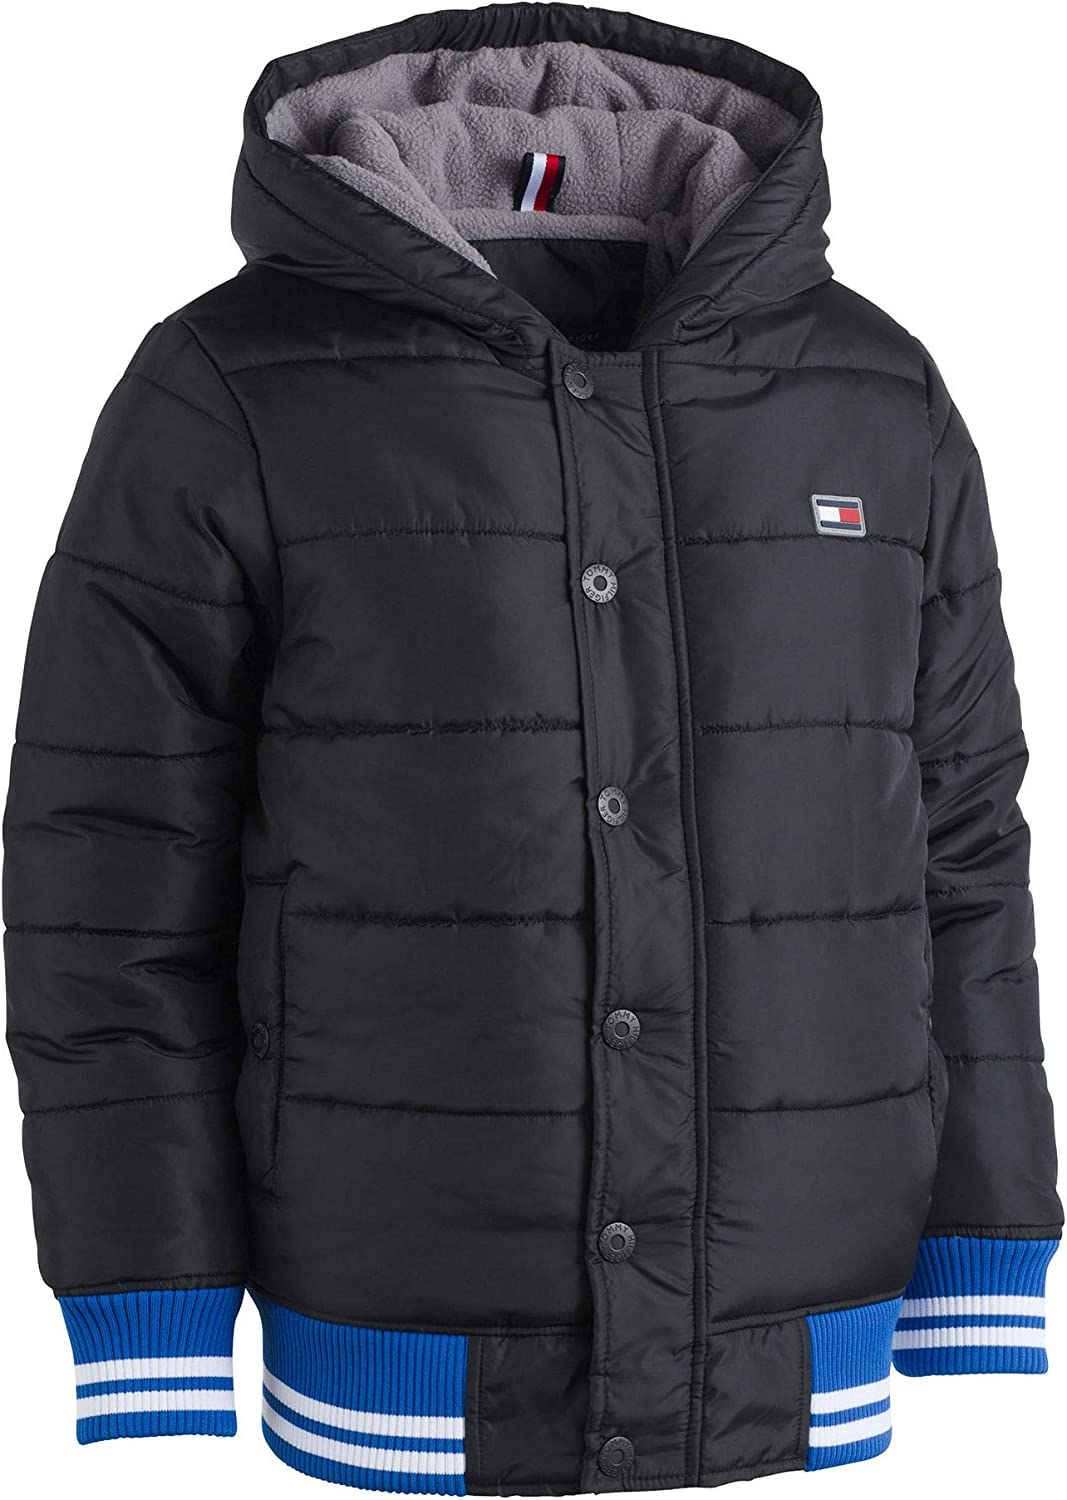 Tommy Hilfiger OUTERWEAR ベビー・ボーイズ